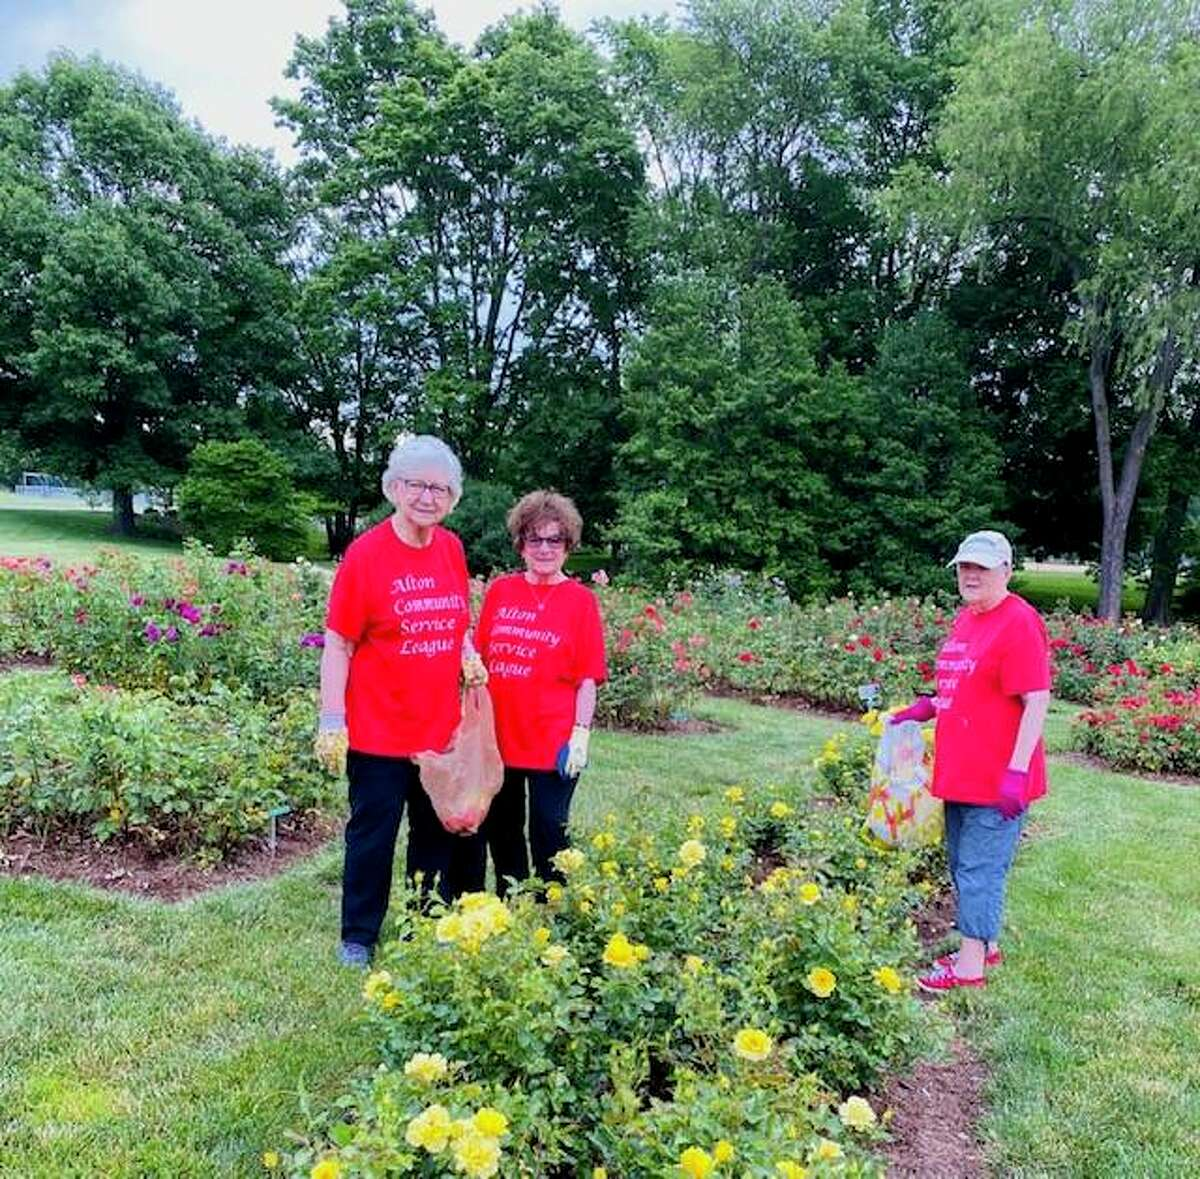 Alton Community Service League members, from left, Jean Rathgeb, Carol Fritz and Carol Morris deadhead roses at the Nan Elliott Memorial Rose garden at Gordon Moore Park in Alton. The All-America Rose Selections accredited garden contains more than 125 varieties of roses, 1,600 rose bushes and a gazebo.